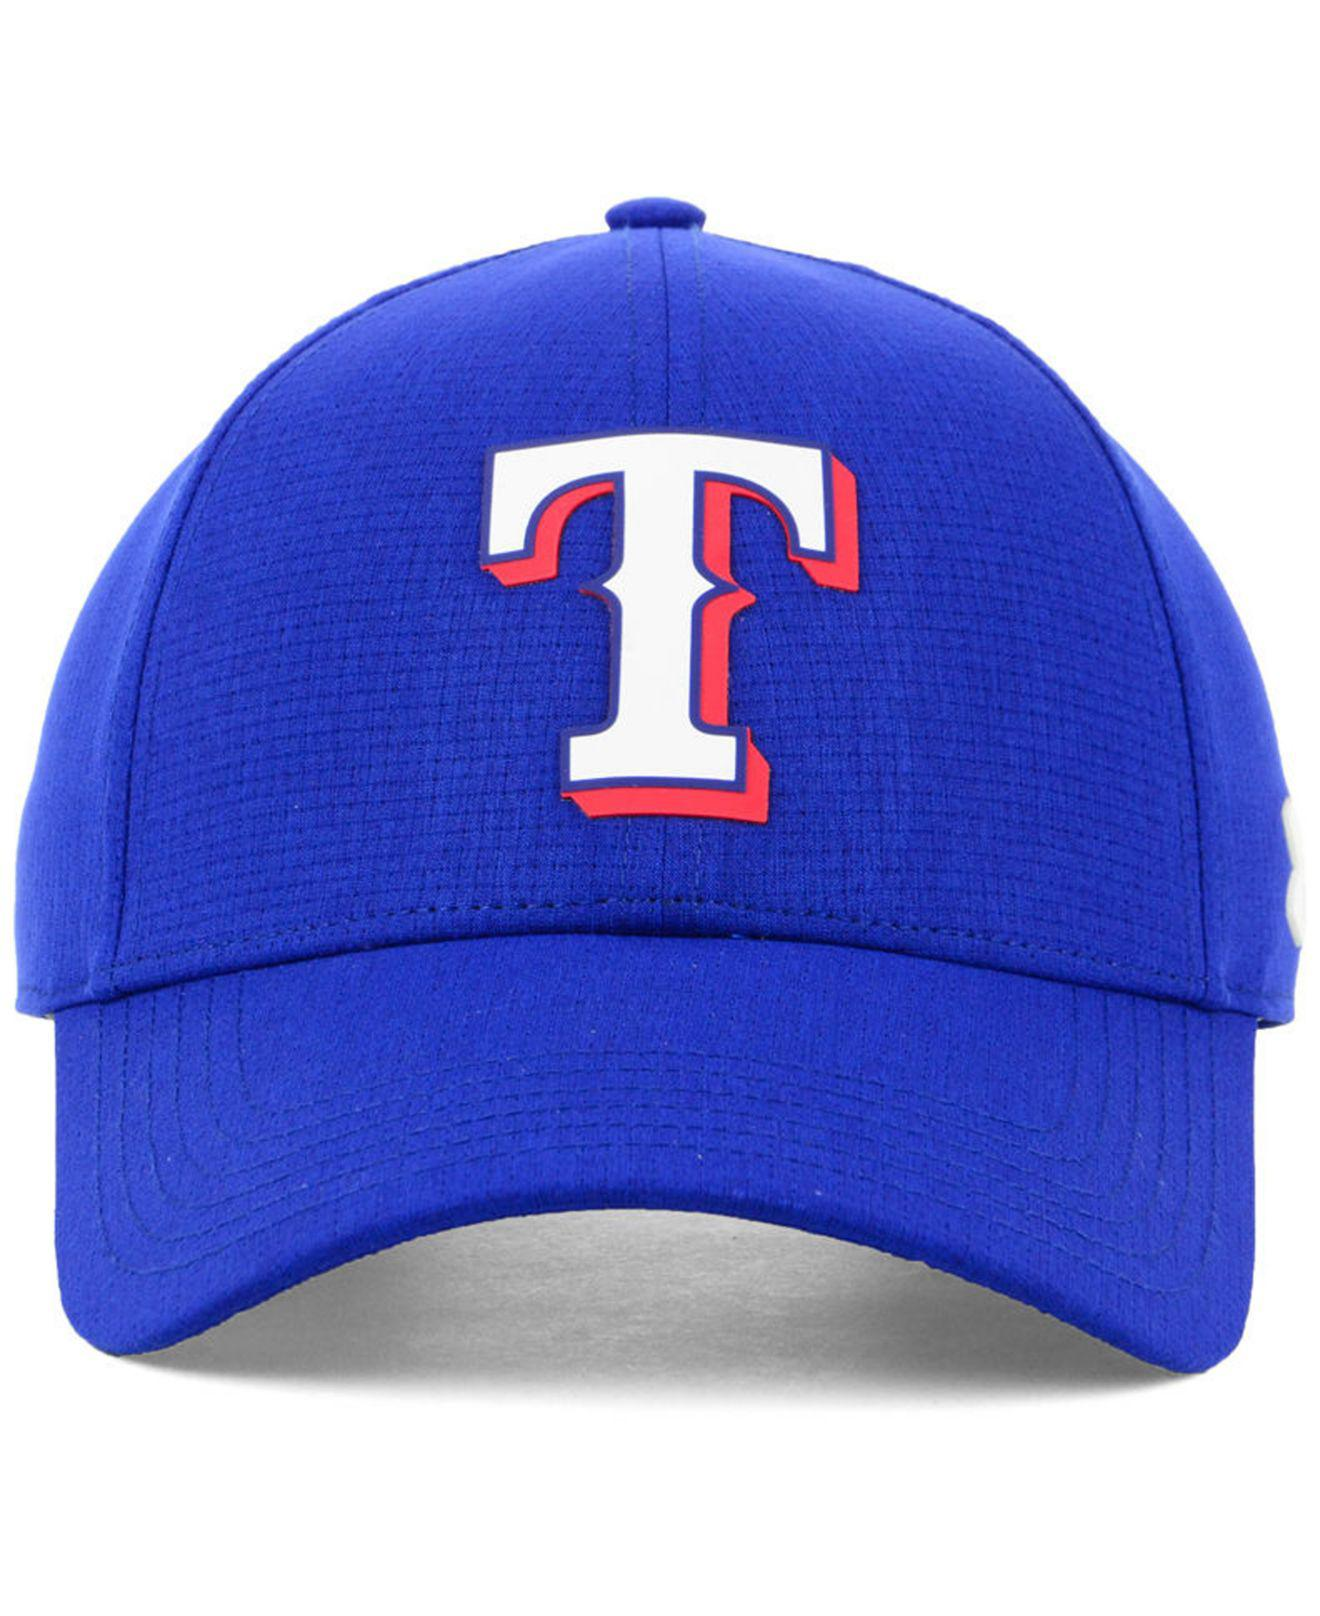 cheaper d96b8 5be2b ... usa lyst under armour texas rangers driver cap in blue for men 5c666  d7602